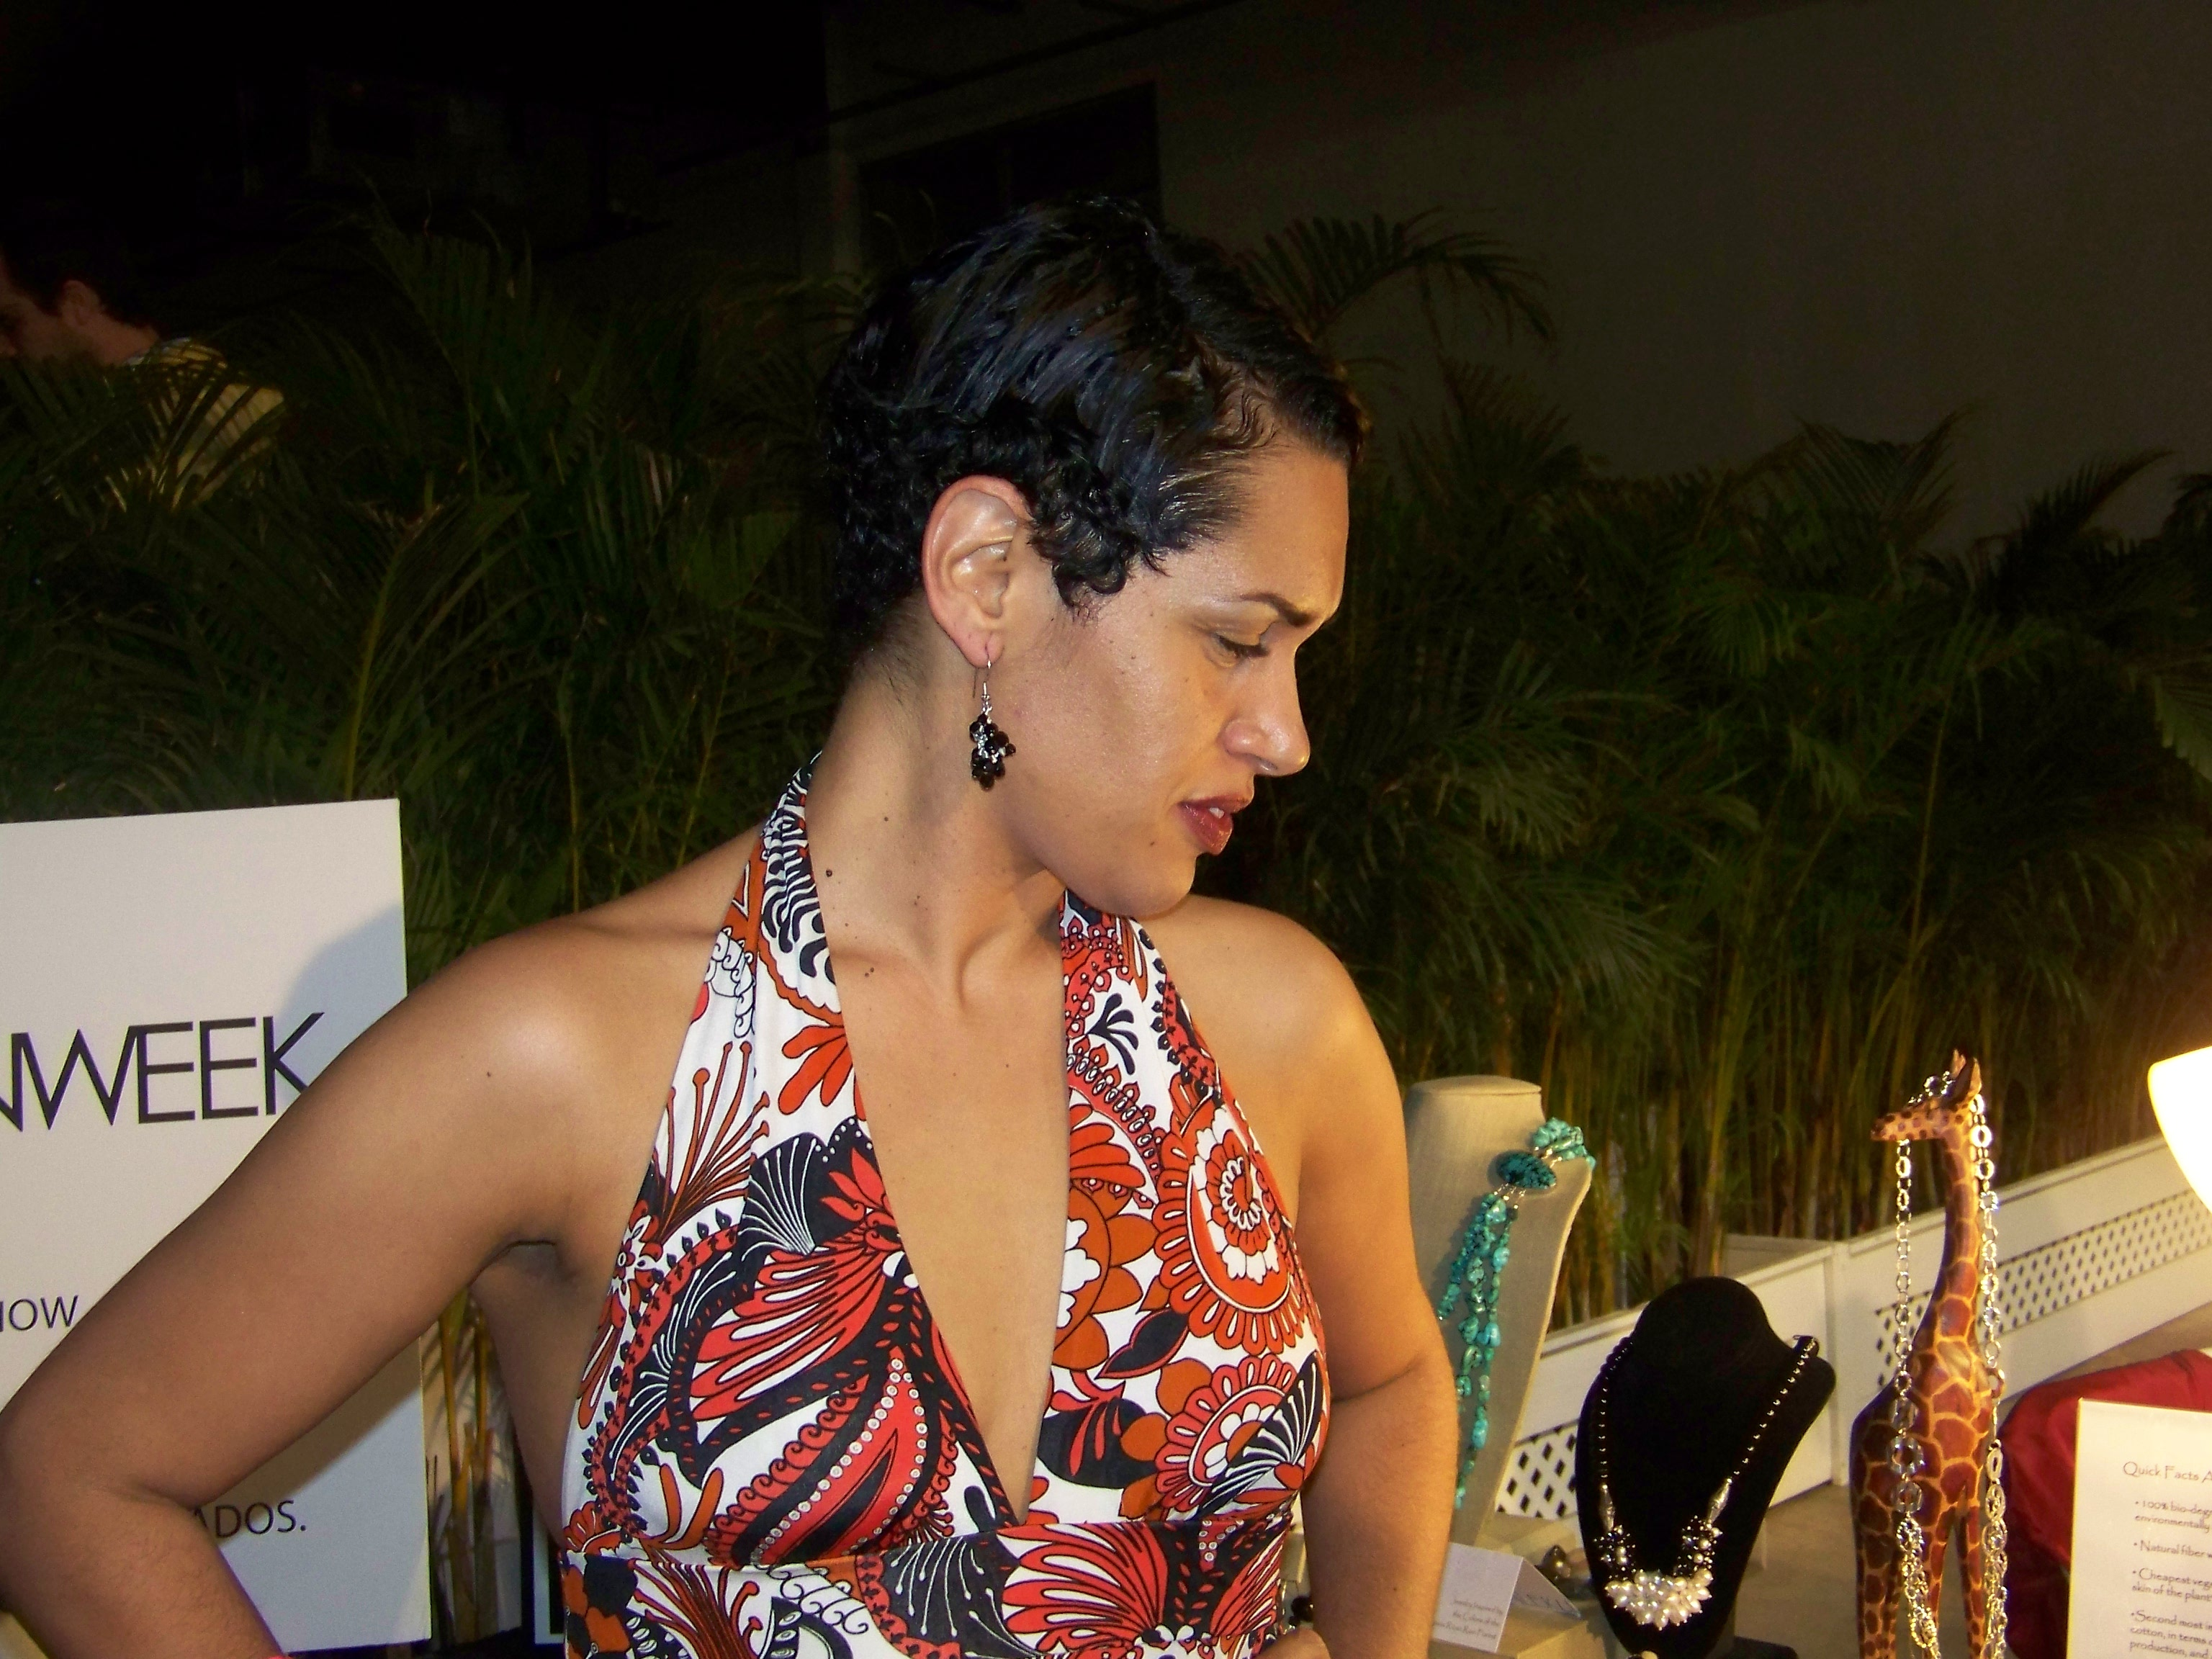 Wearing Maleku Jewelry at Miami Fashion Week